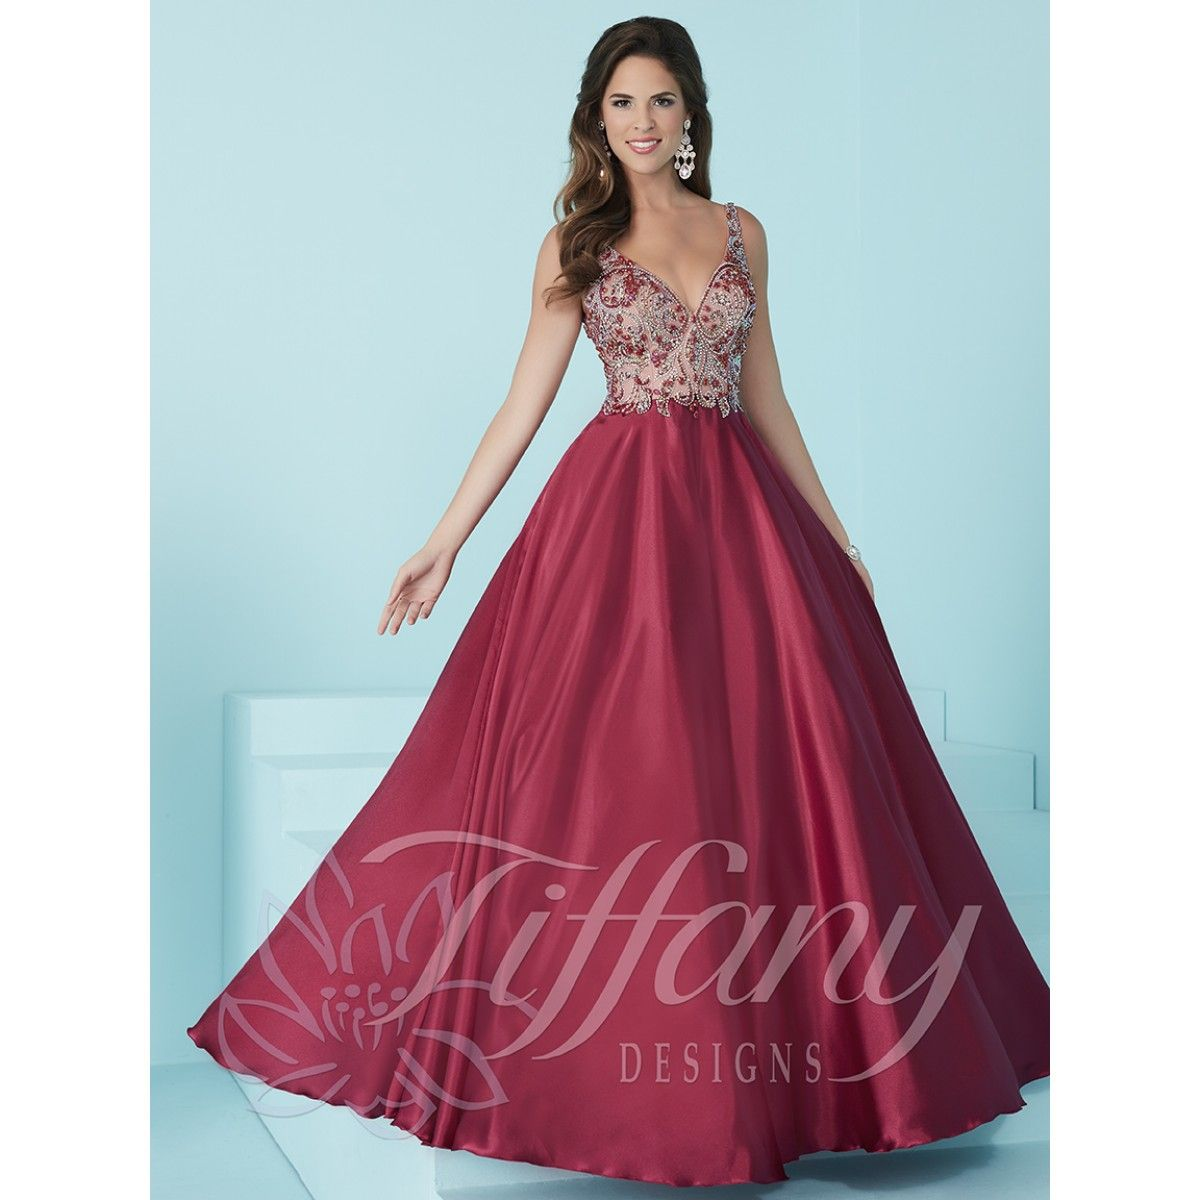 New style prom pinterest satin skirt bodice and